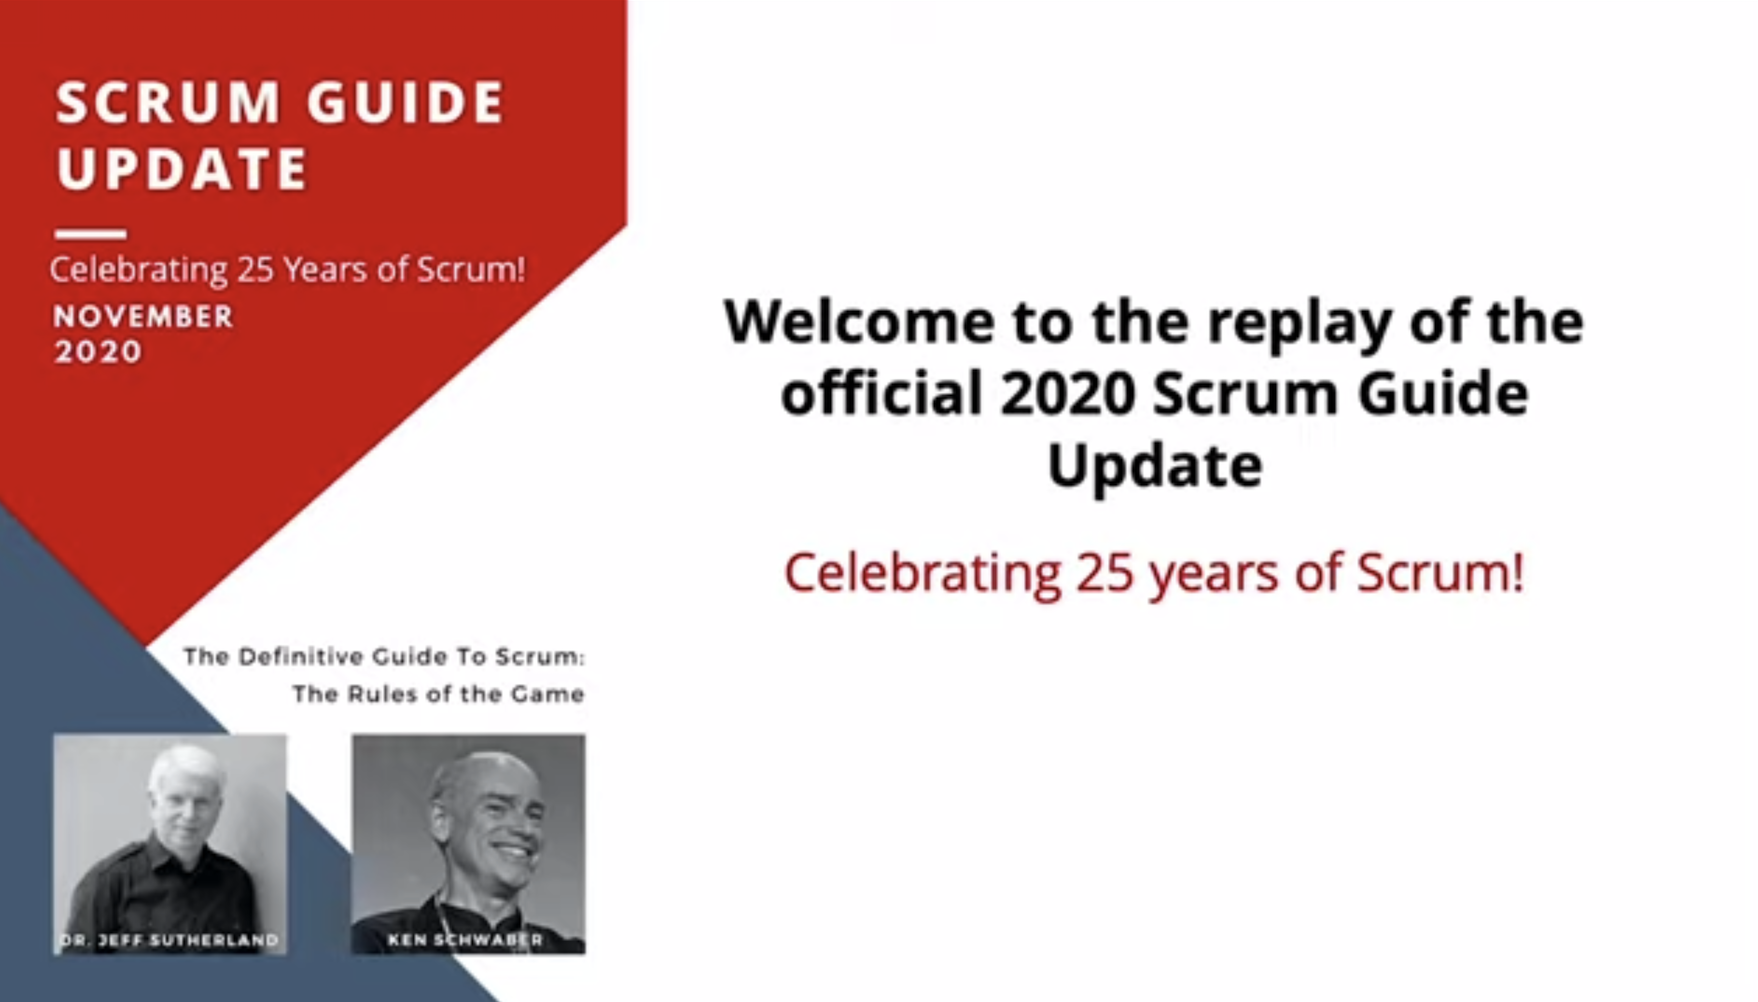 Publication of the new Scrum Guide (November 2020)